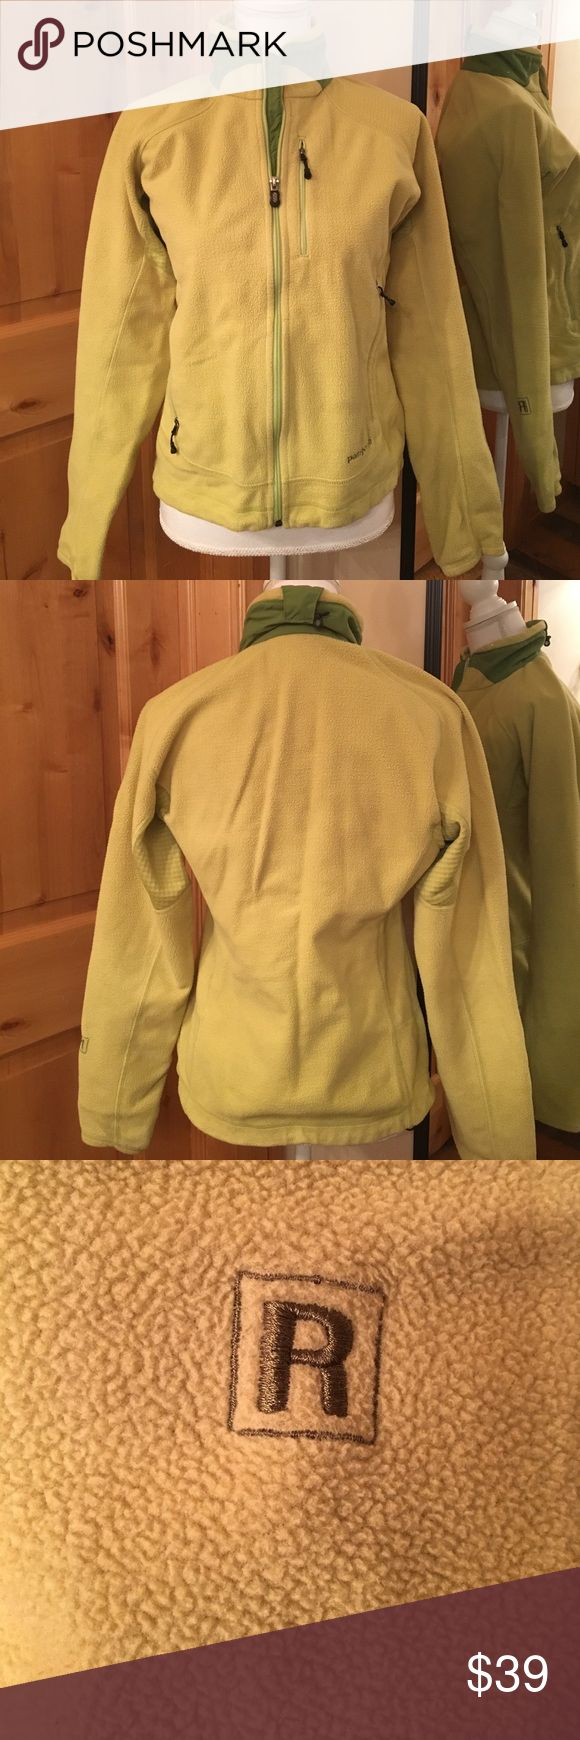 Patagonia Fleece. Size M.  GUC. Patagonia Fleece. Size M.  GUC.  Pairs nicely with the same colored shell/jacket that I also have listed. If you buy the Shell I will give you this Fleece for $20. Patagonia Jackets & Coats